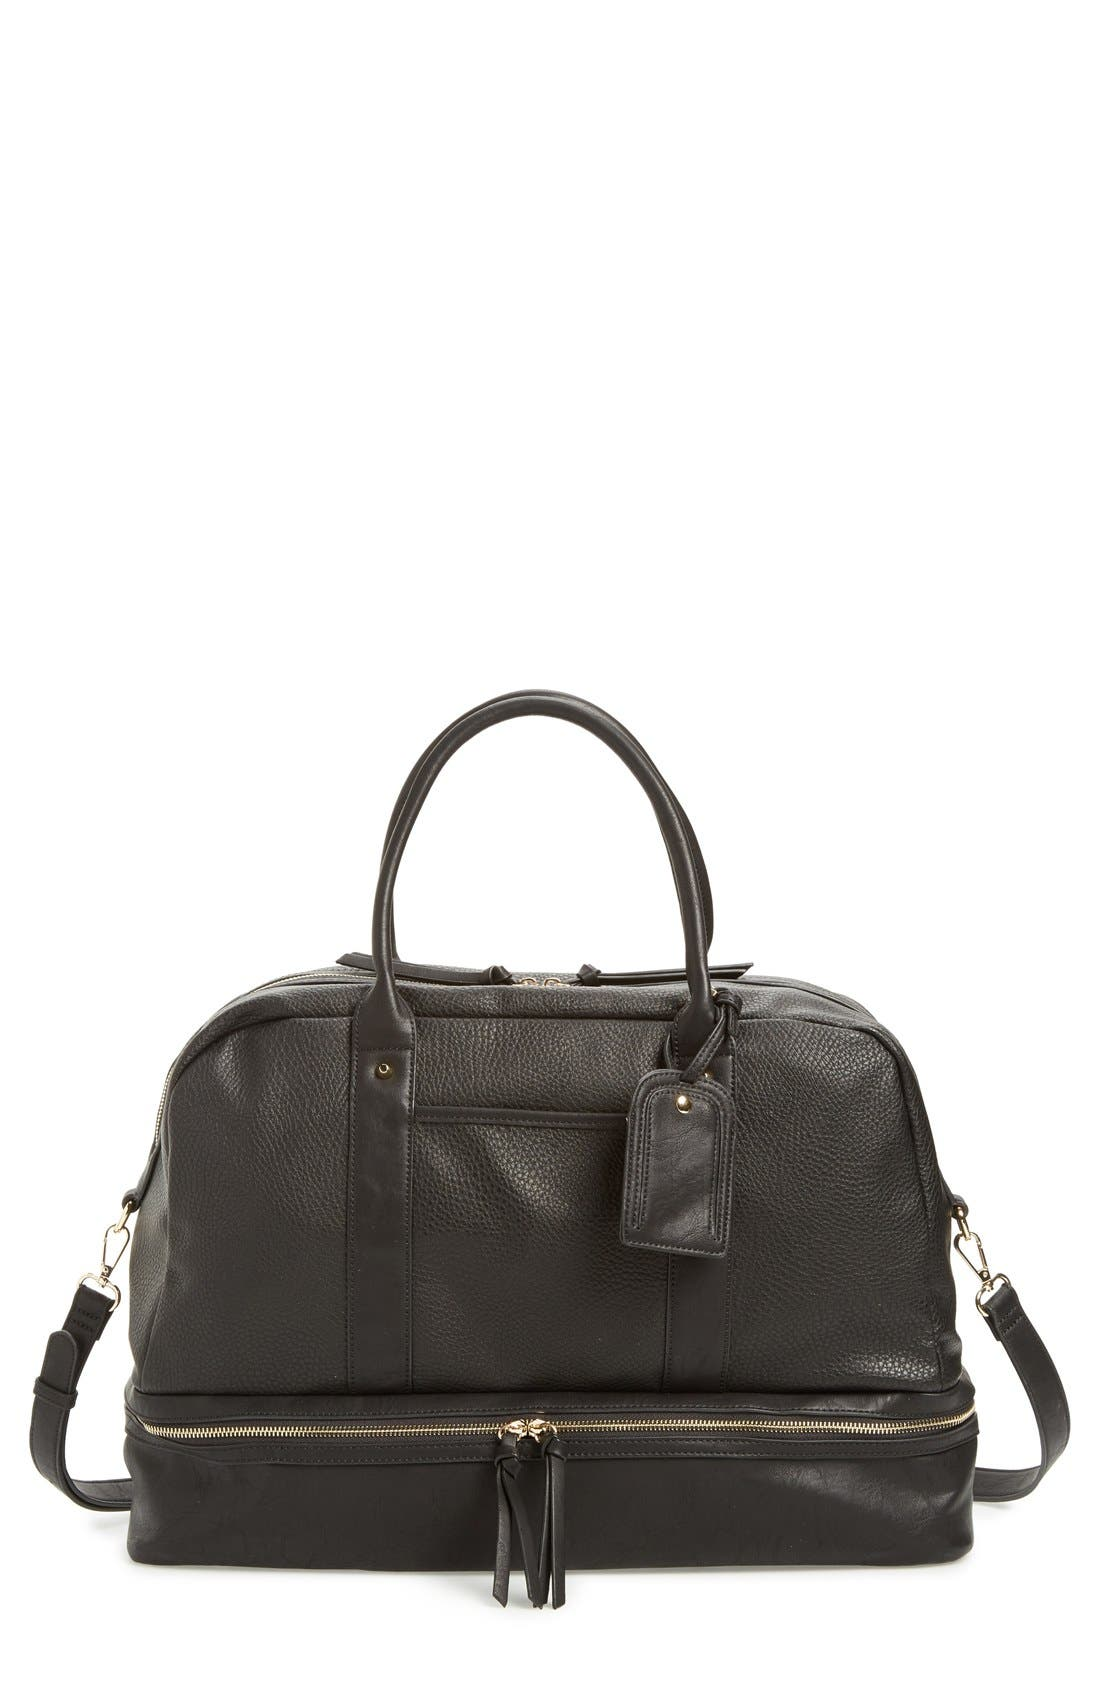 Alternate Image 1 Selected - Sole Society 'Mason' Faux Leather Weekend Bag